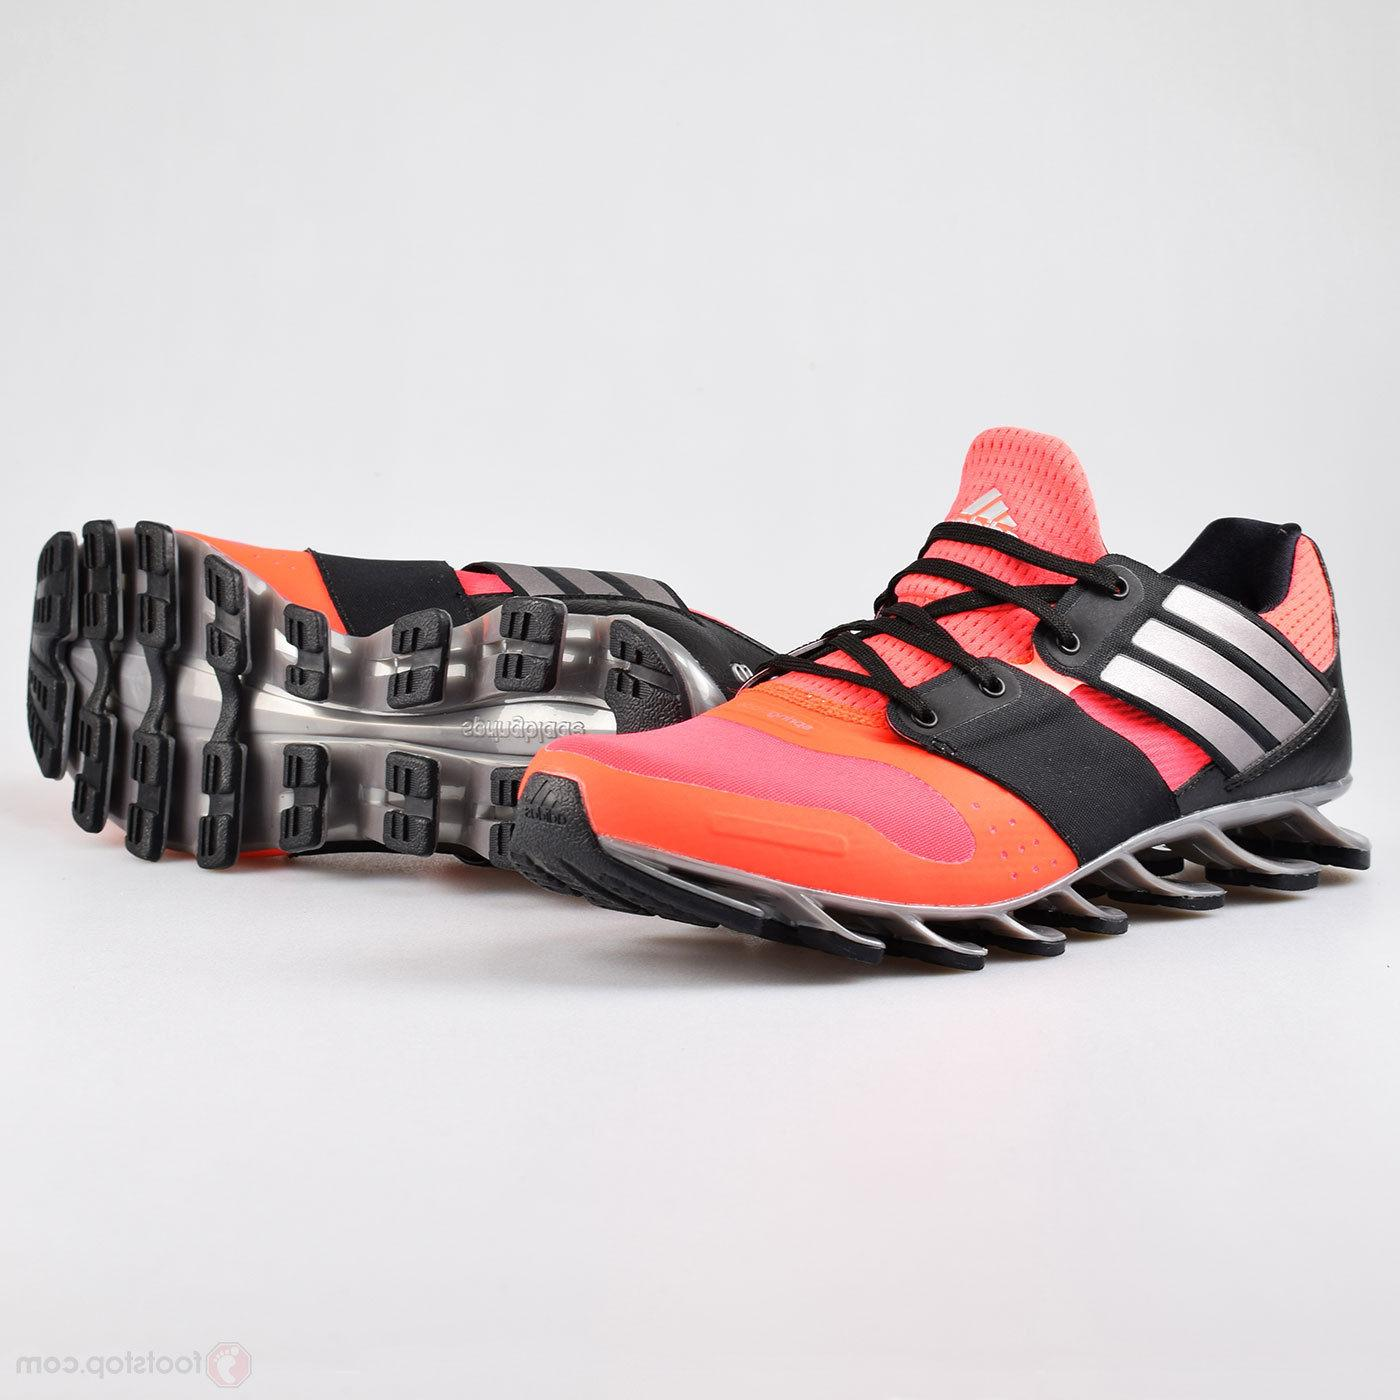 springblade solyce red black mens running shoes